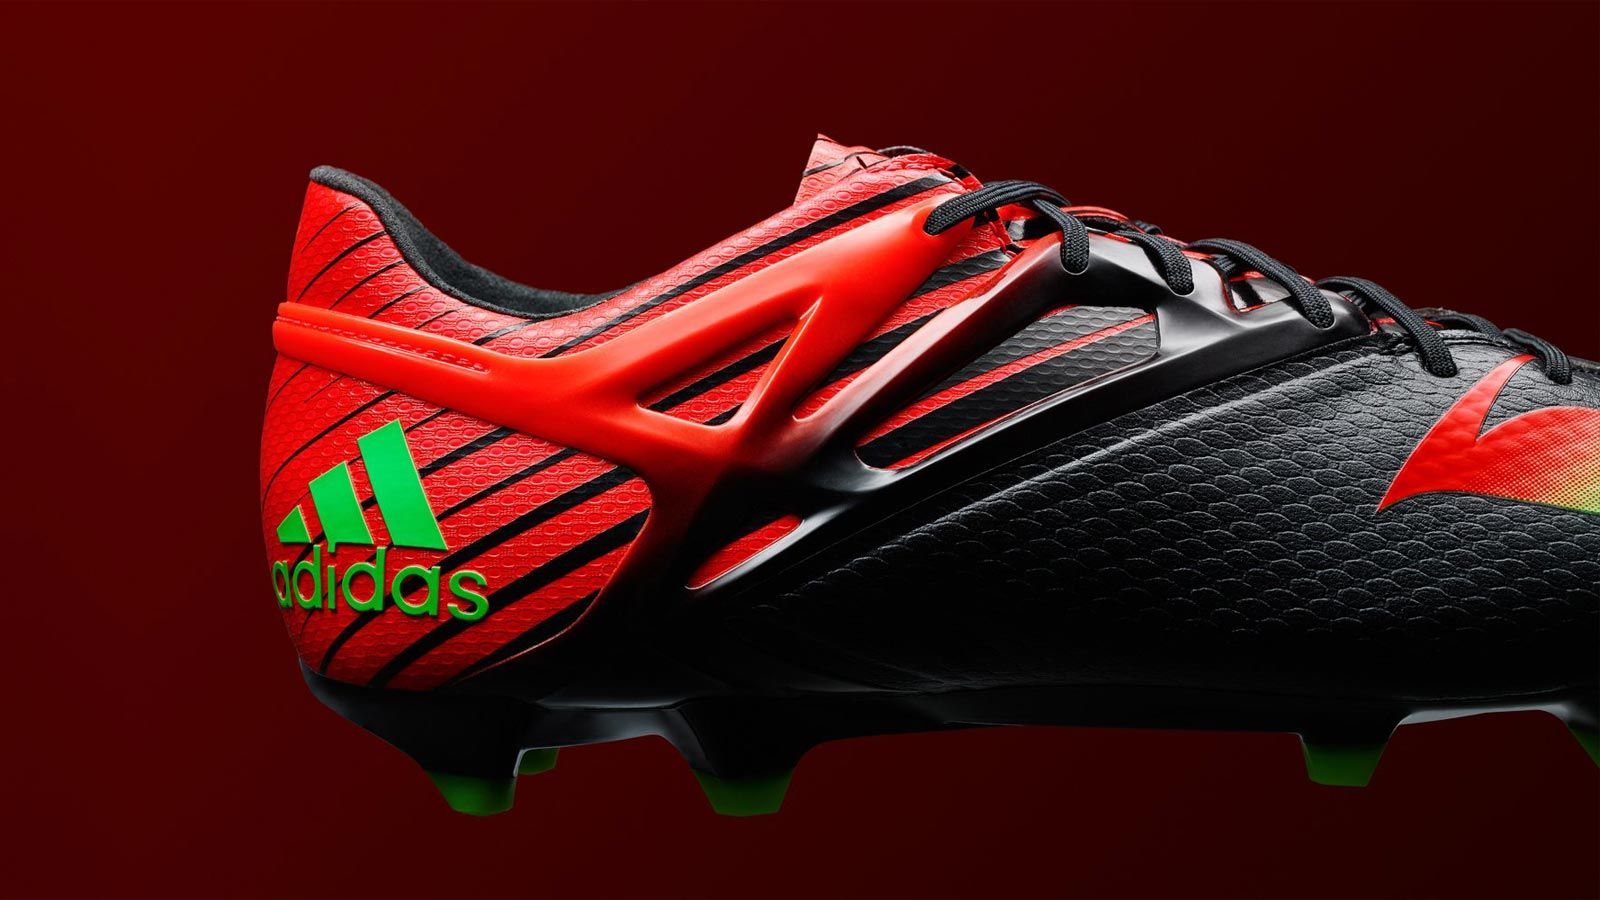 separation shoes aaddf 6f27b The new black   red Adidas Messi 2015-2016 Football Boot features an  extremely bold design. Leo Messi is set to wear the new Black   Solar Red    Green ...